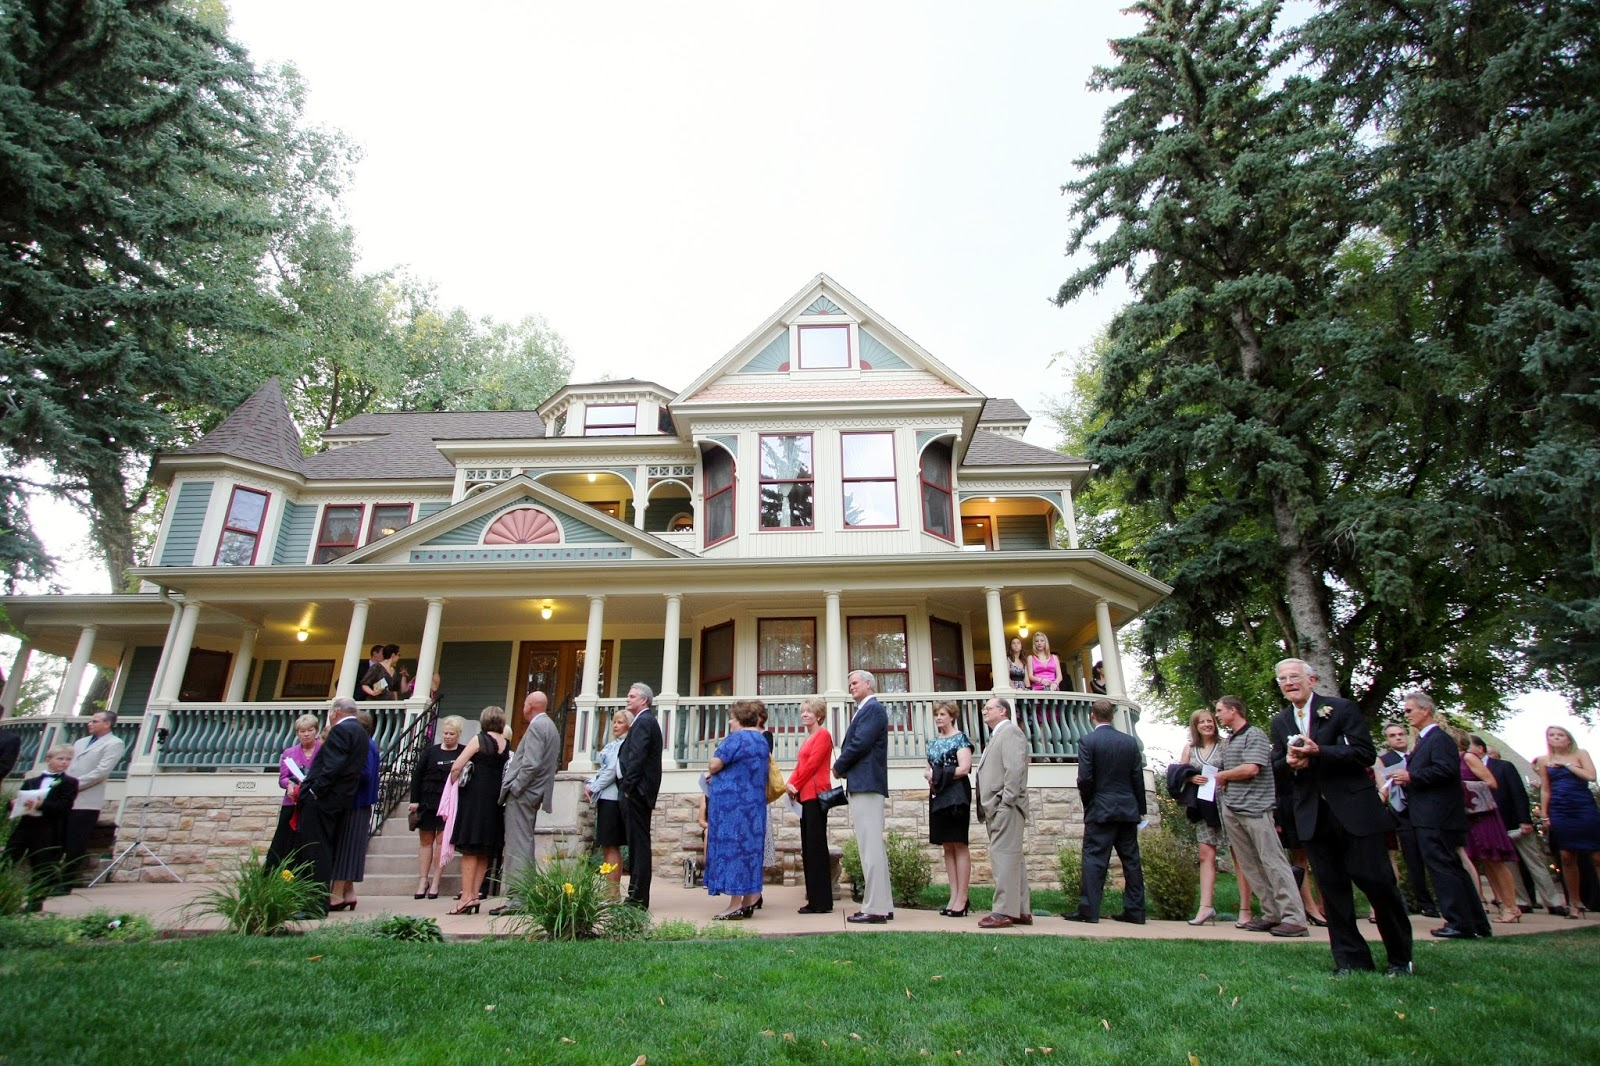 Tapestry House's Unforgettable Wedding Stories: Lonnie